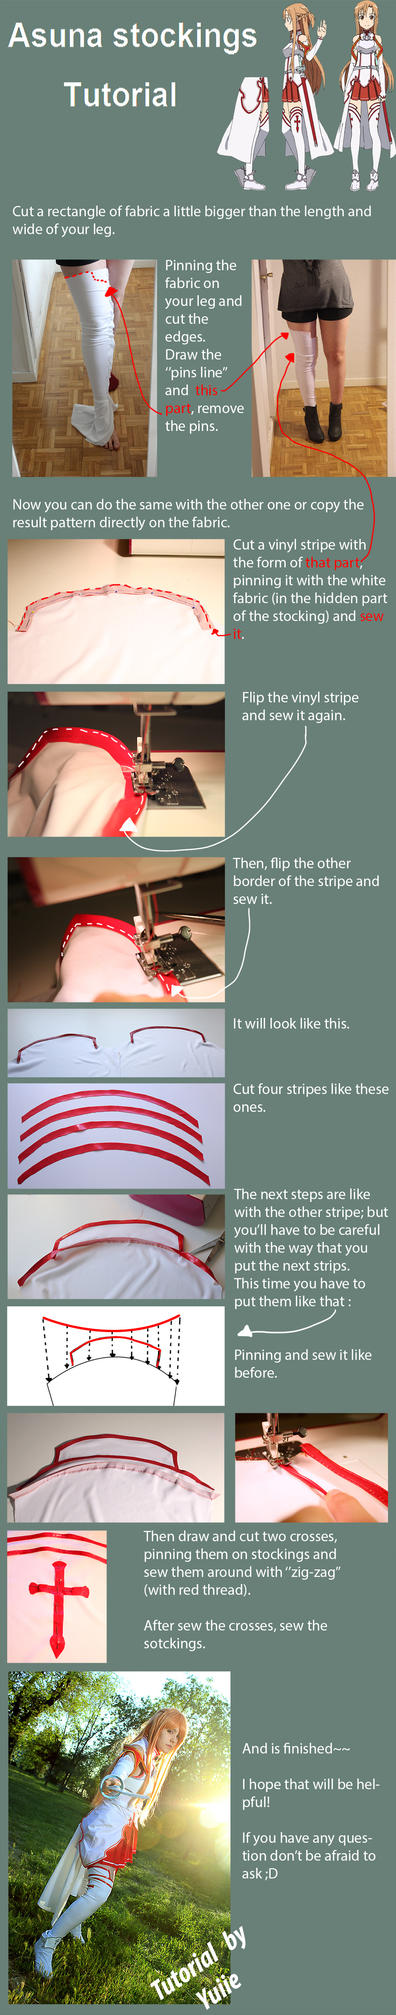 Tutorial - Asuna sotckings by Yuiie